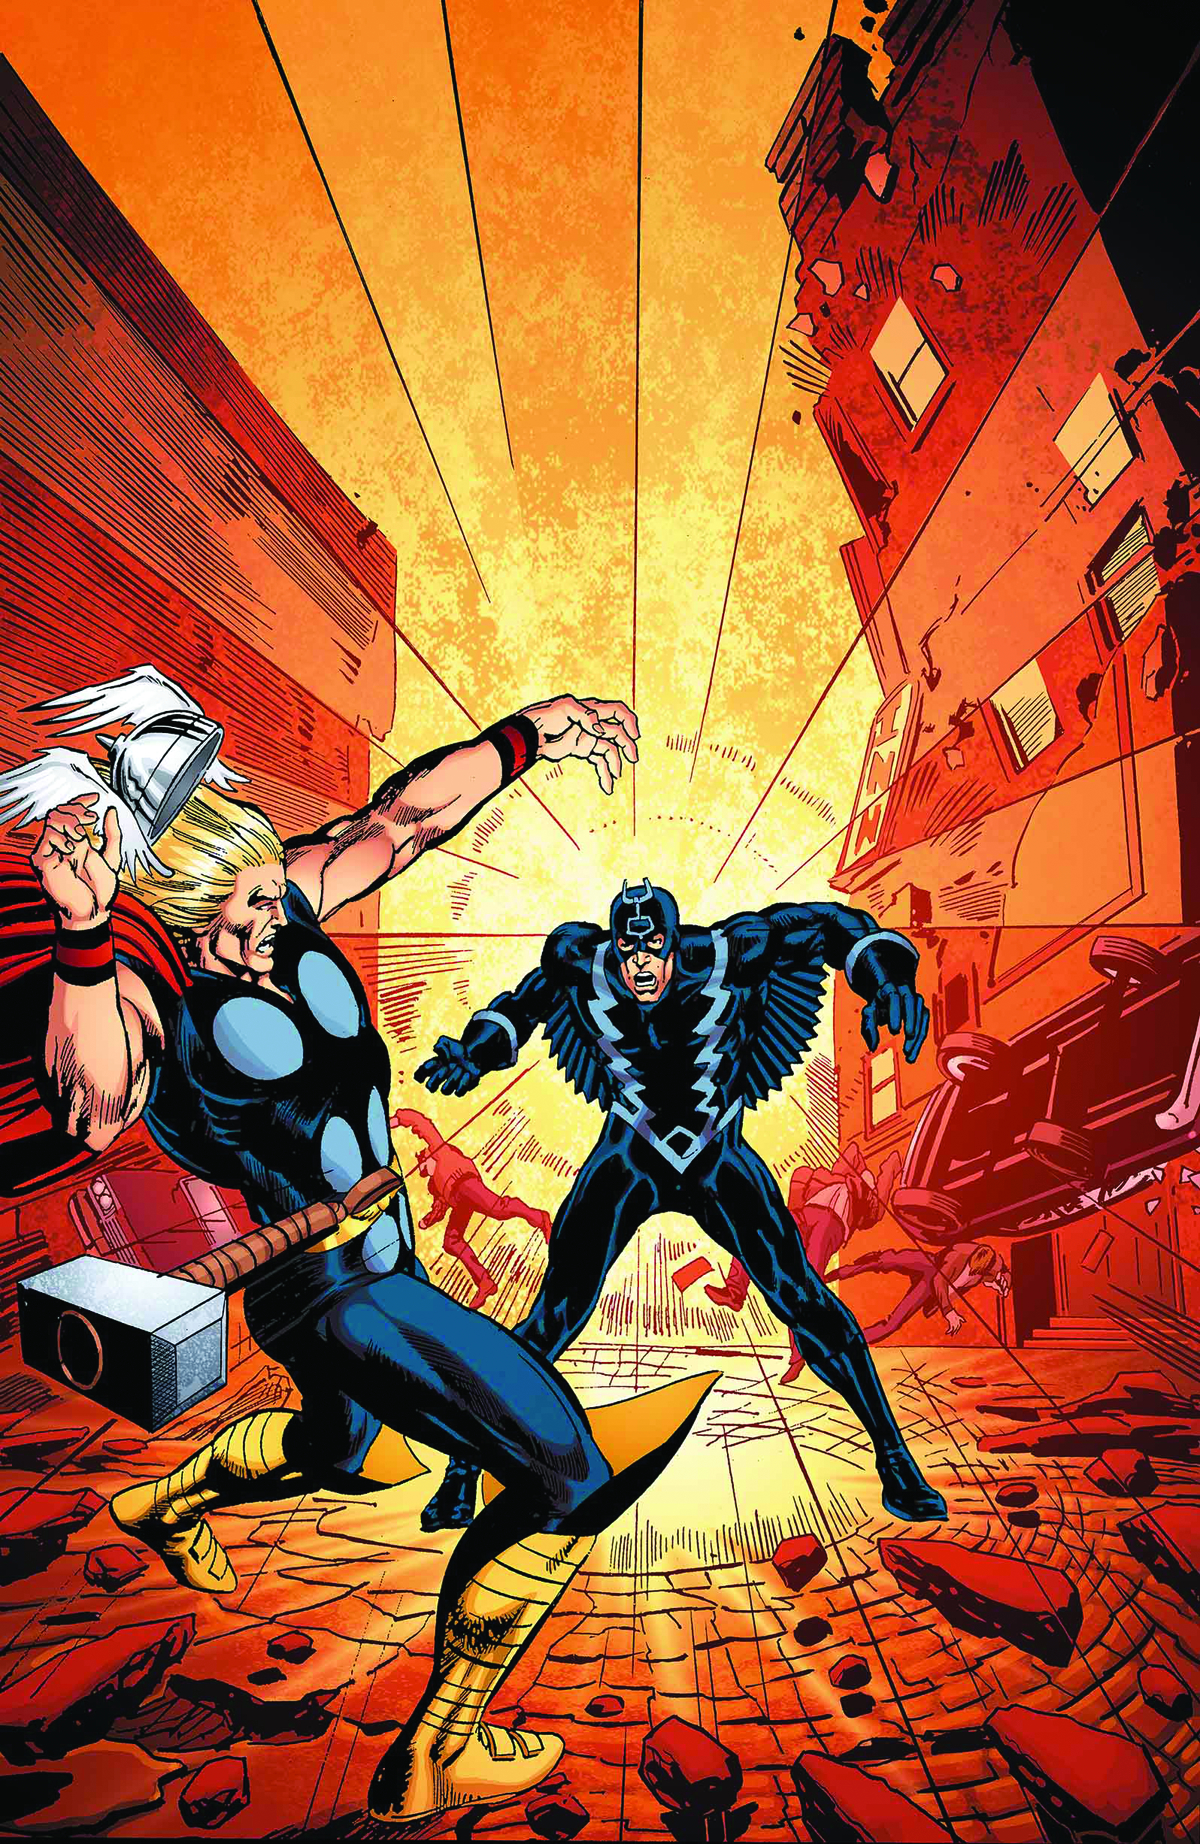 BLACK BOLT SOMETHING INHUMAN THIS WAY COMES